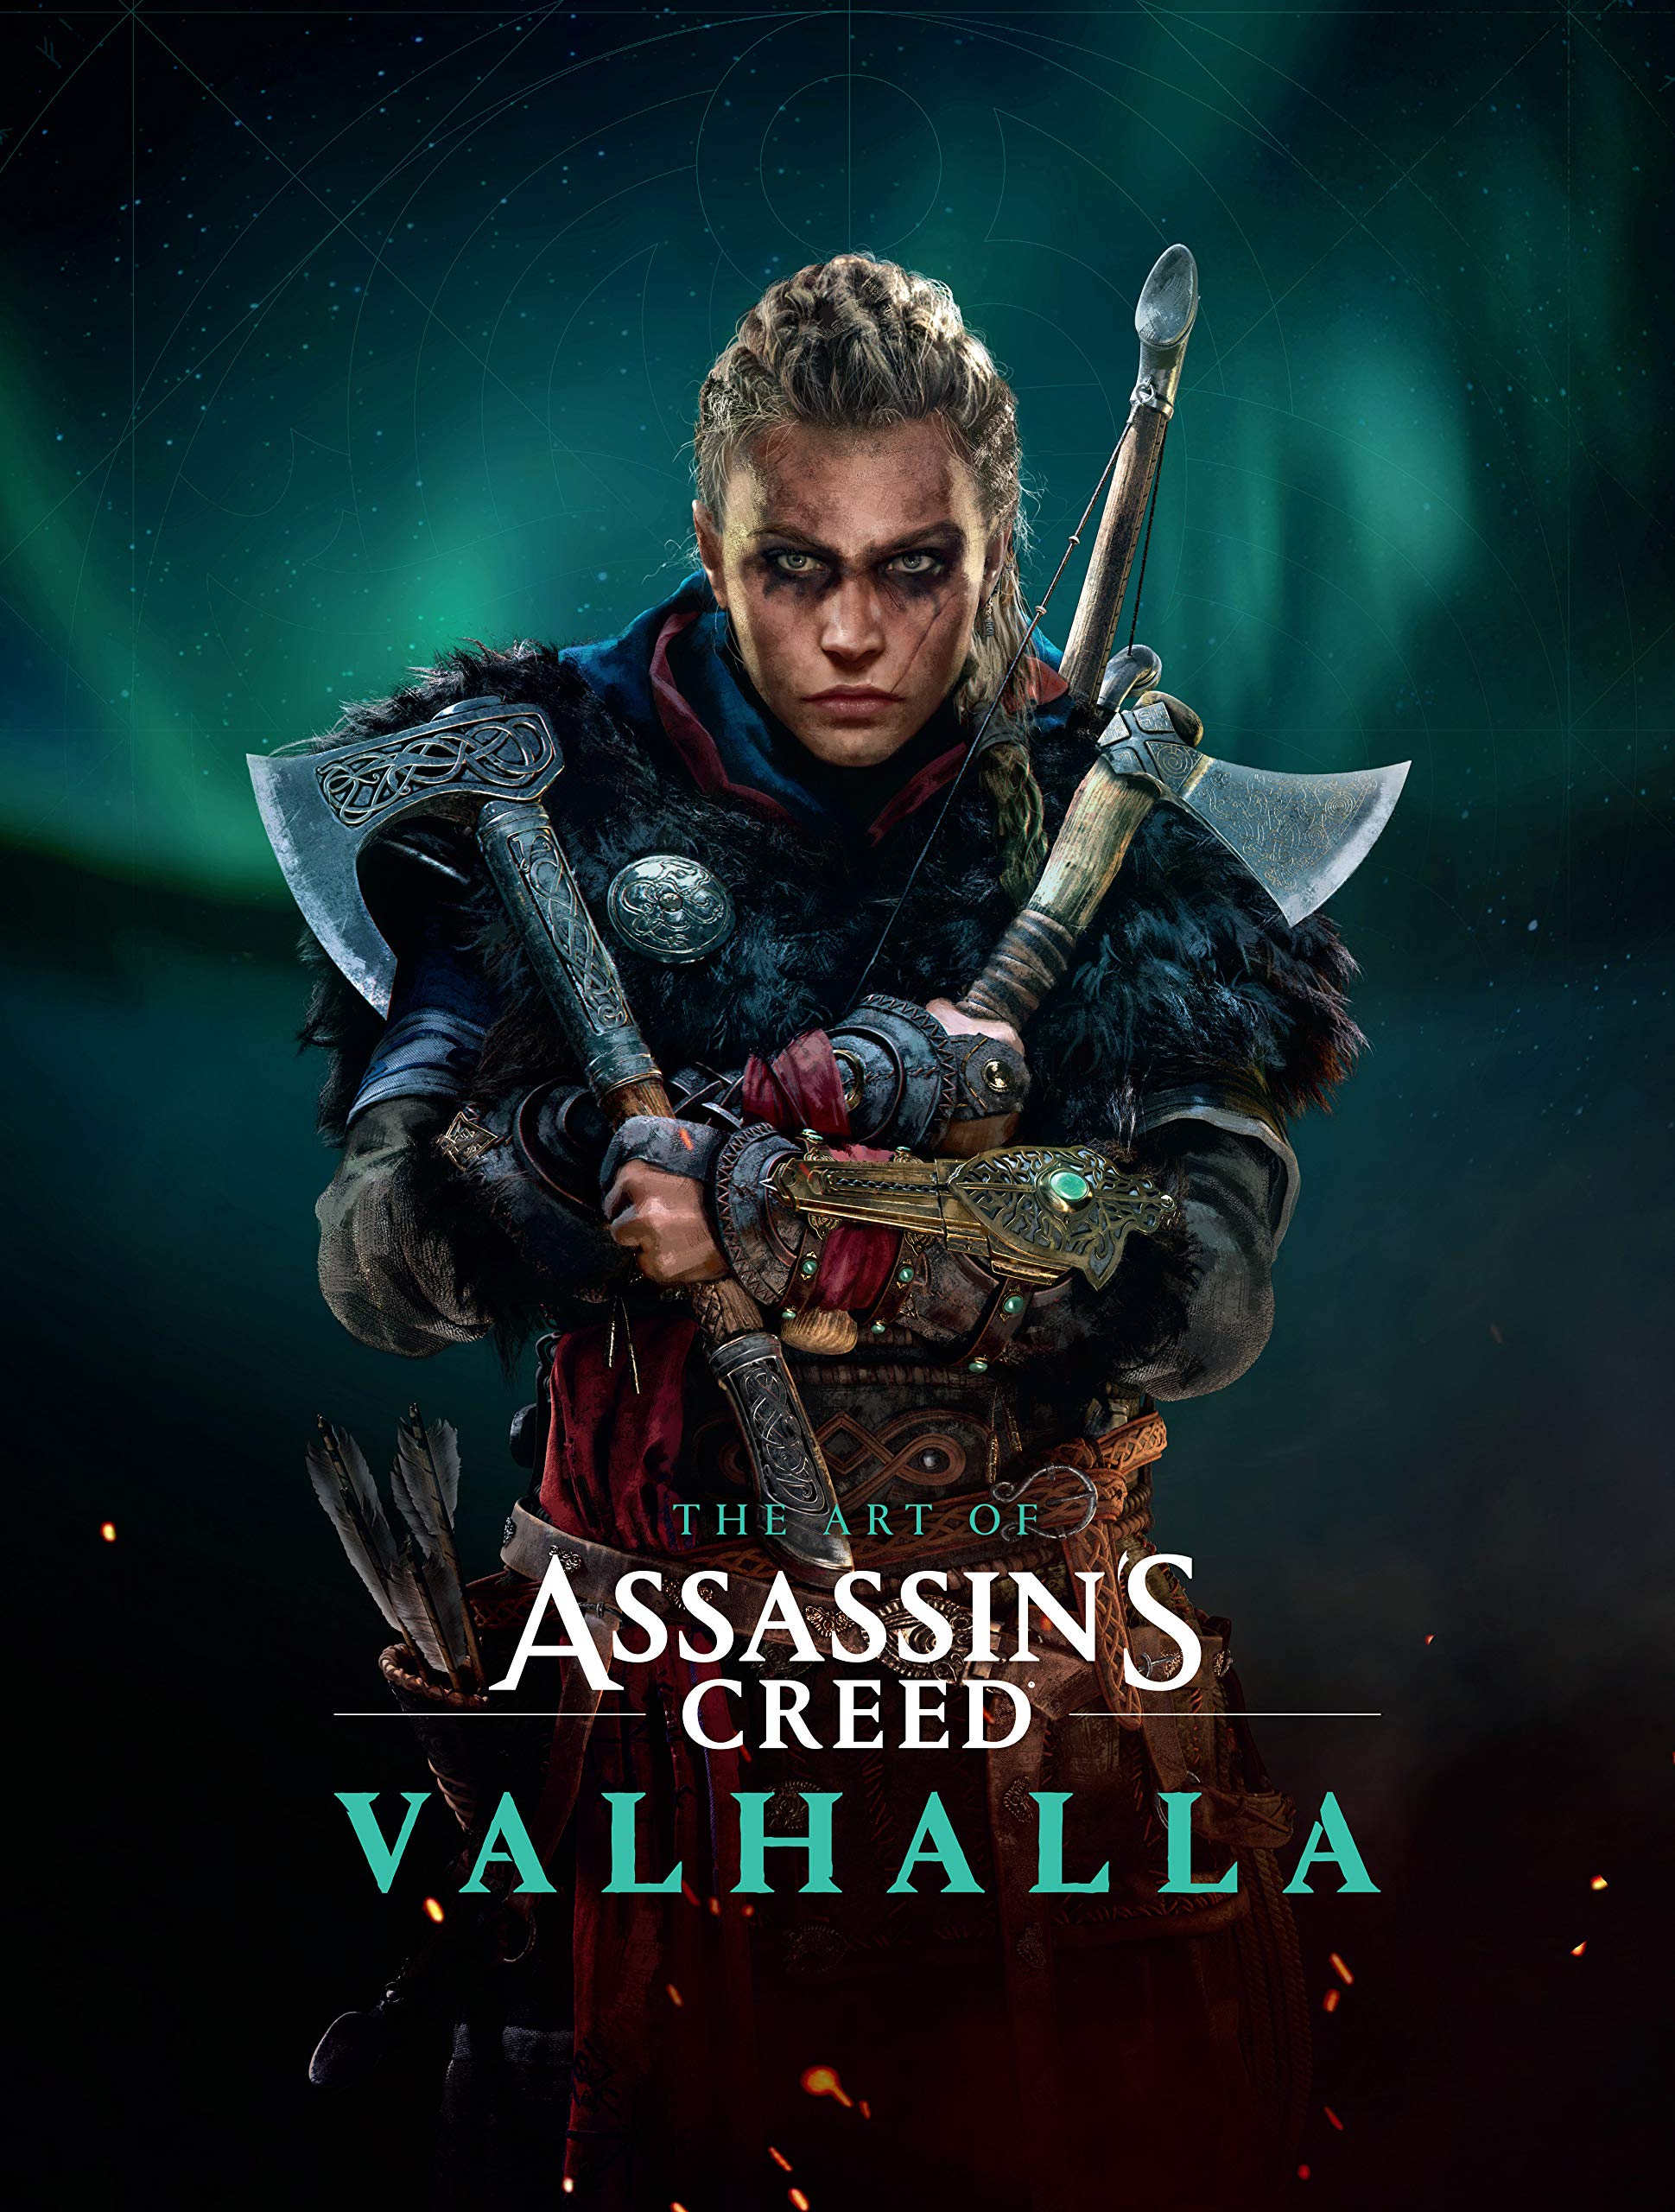 The Art of Assassin's Creed Valhalla Cover Art